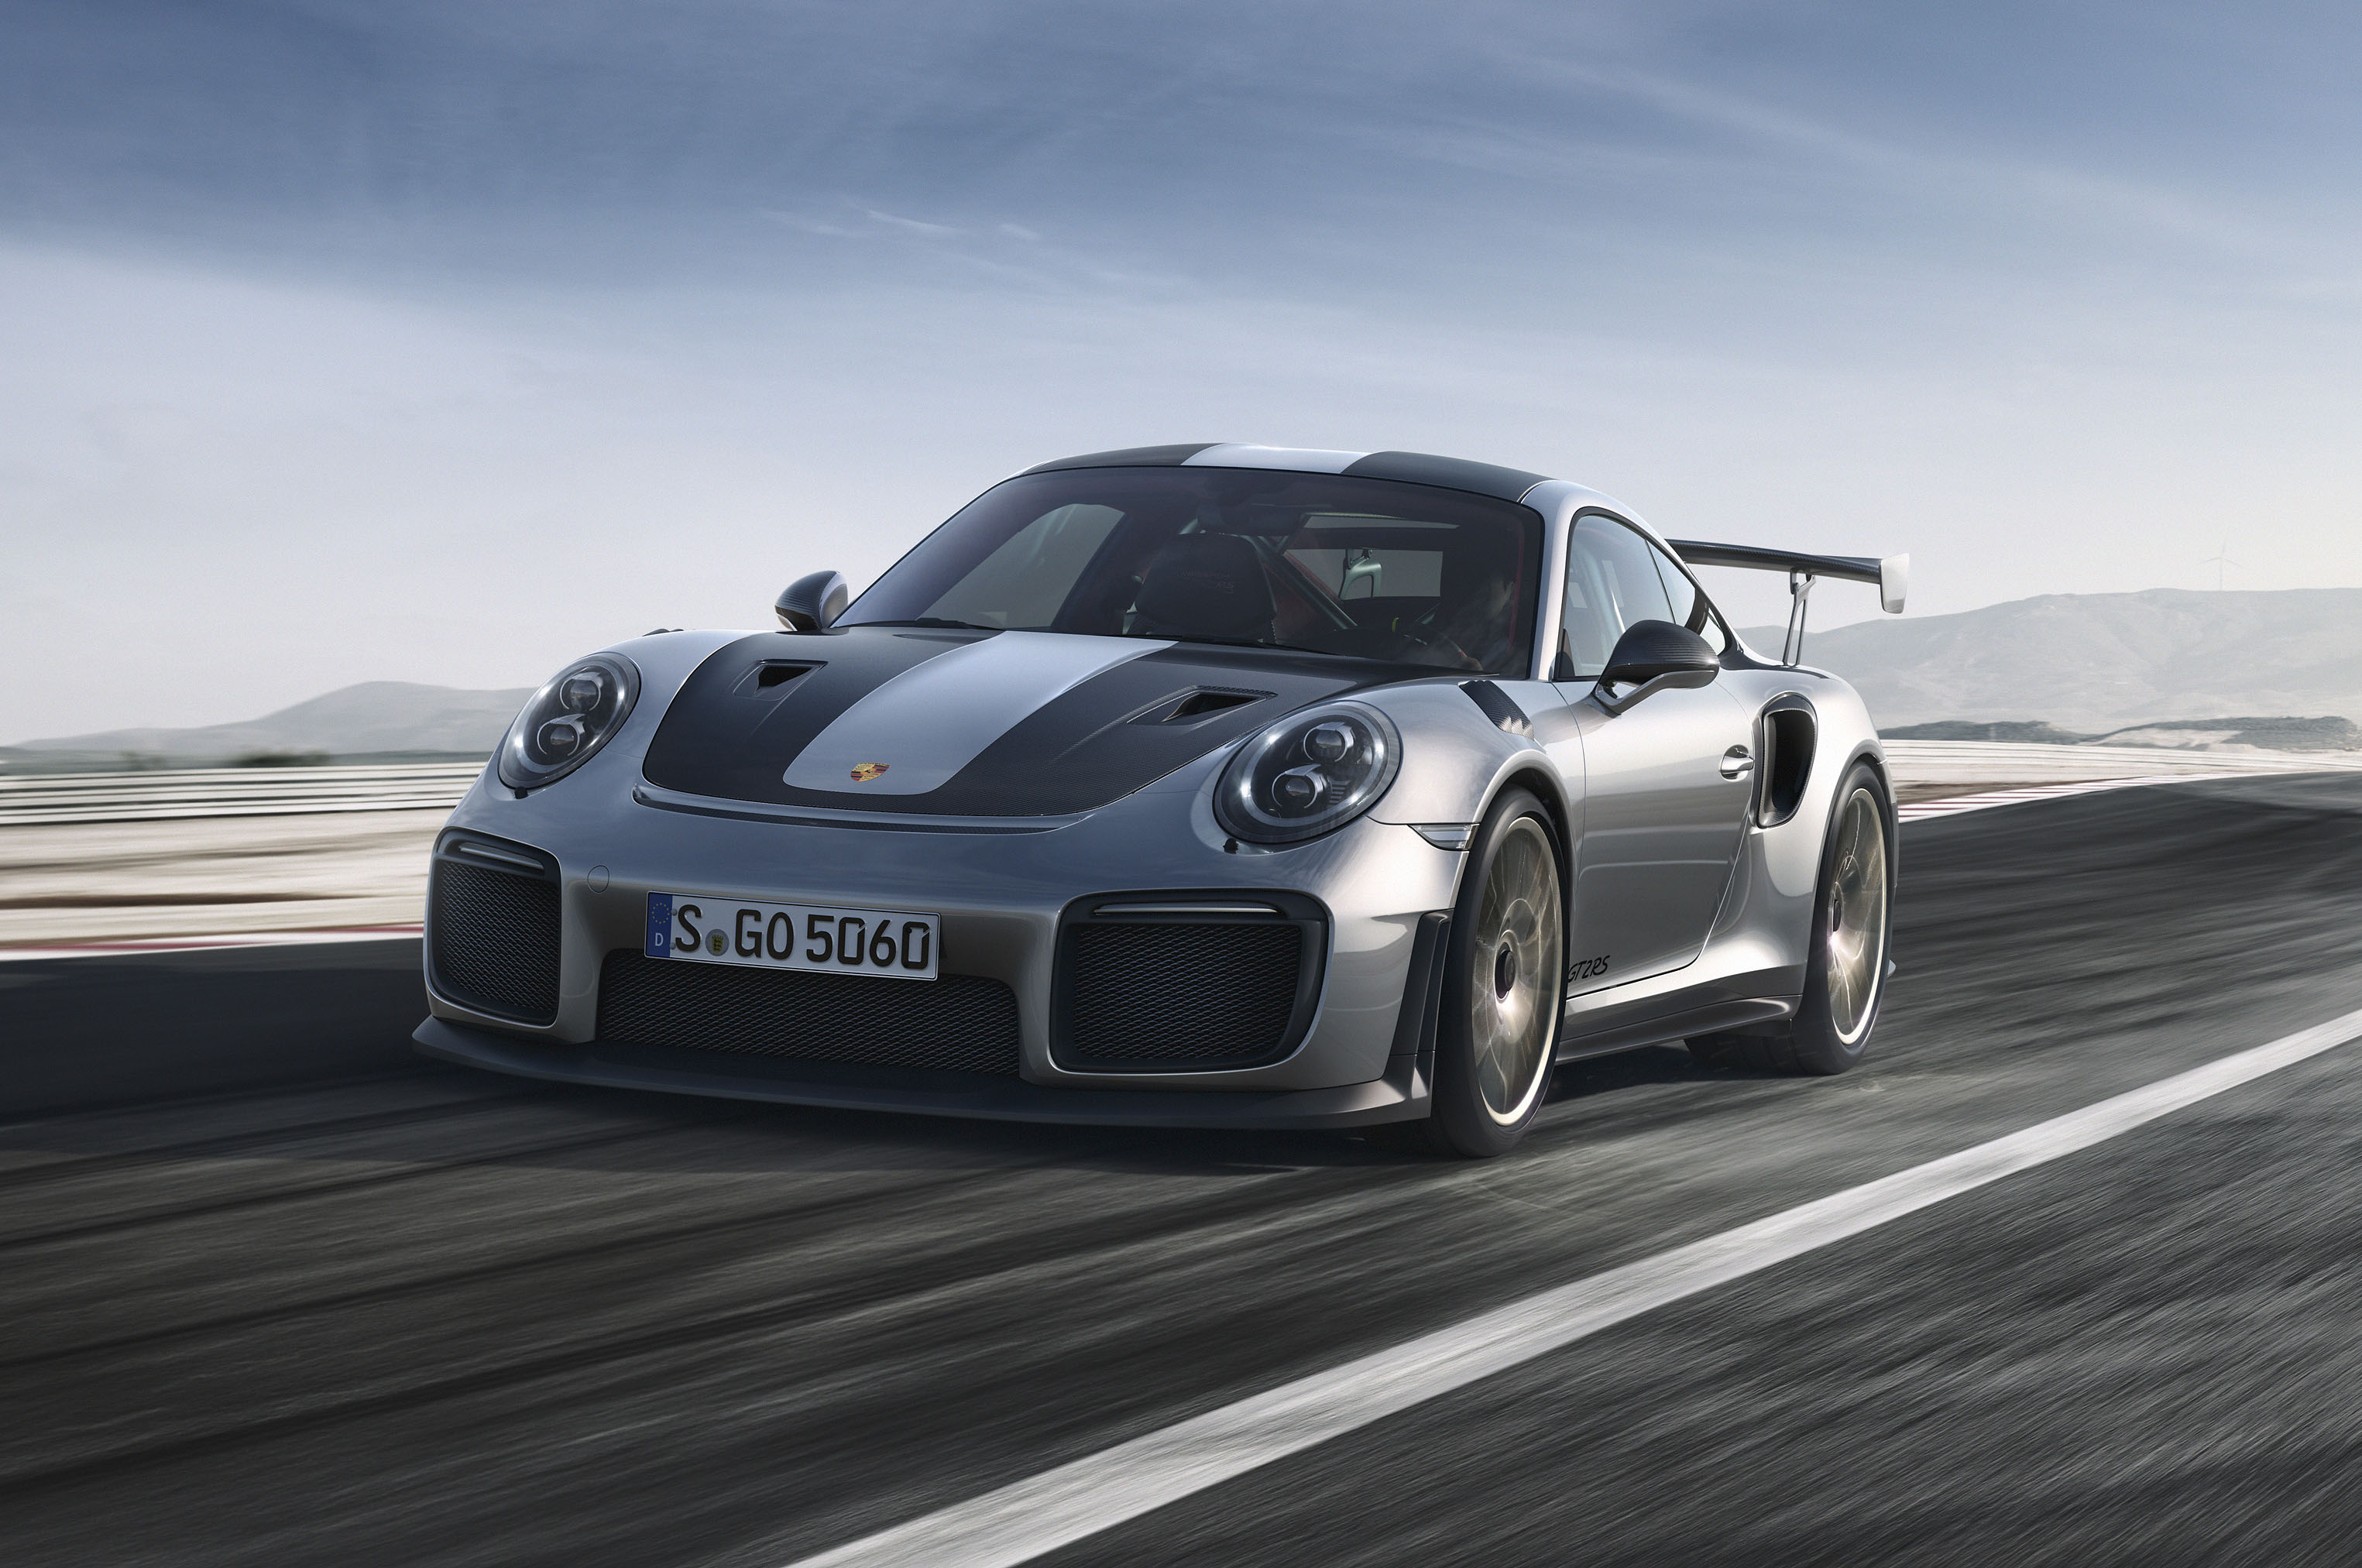 2018-Porsche-911-GT2-RS-front-three-quarter Interesting Porsche 911 Gt2 and Gt3 Cars Trend